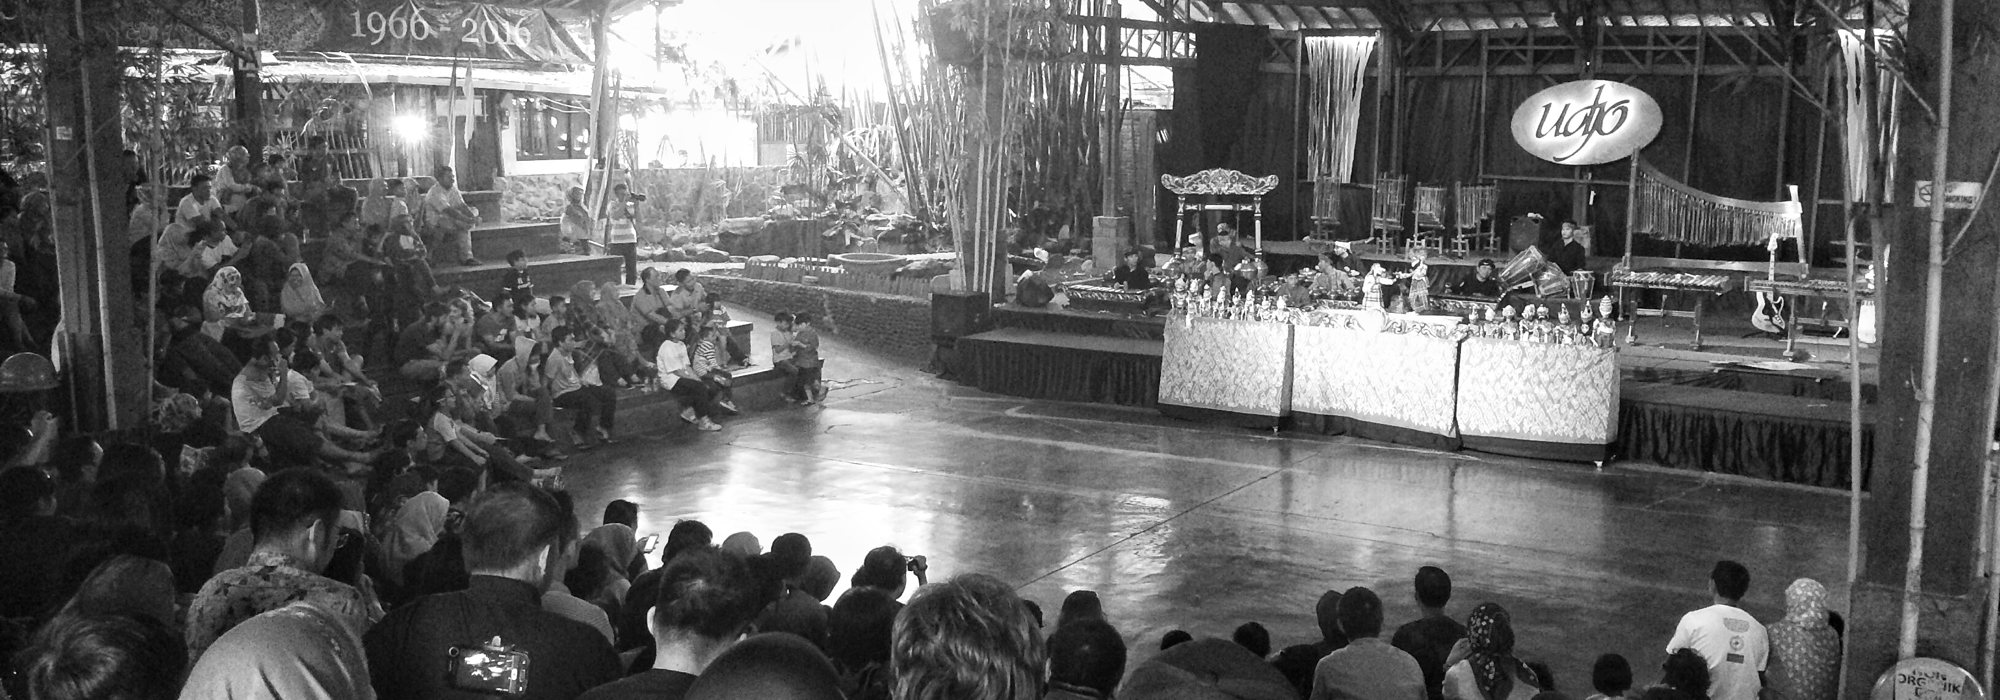 Black and white photo of a crowd watching a performance